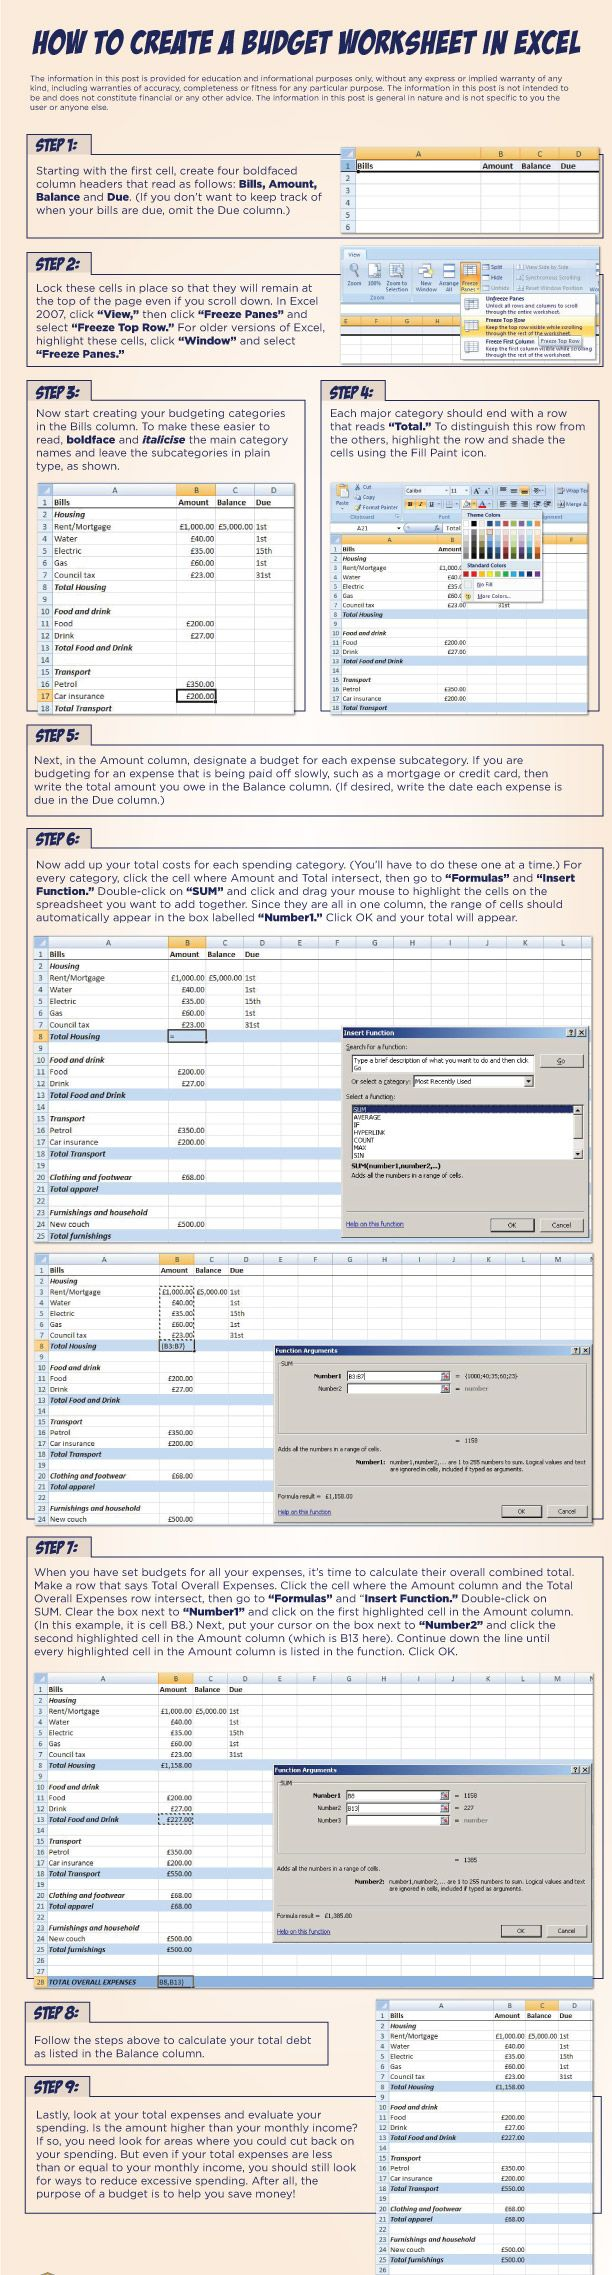 Worksheets Finance Worksheets 25 best budget worksheets ideas on pinterest free learn how to create a worksheet in excel step by step